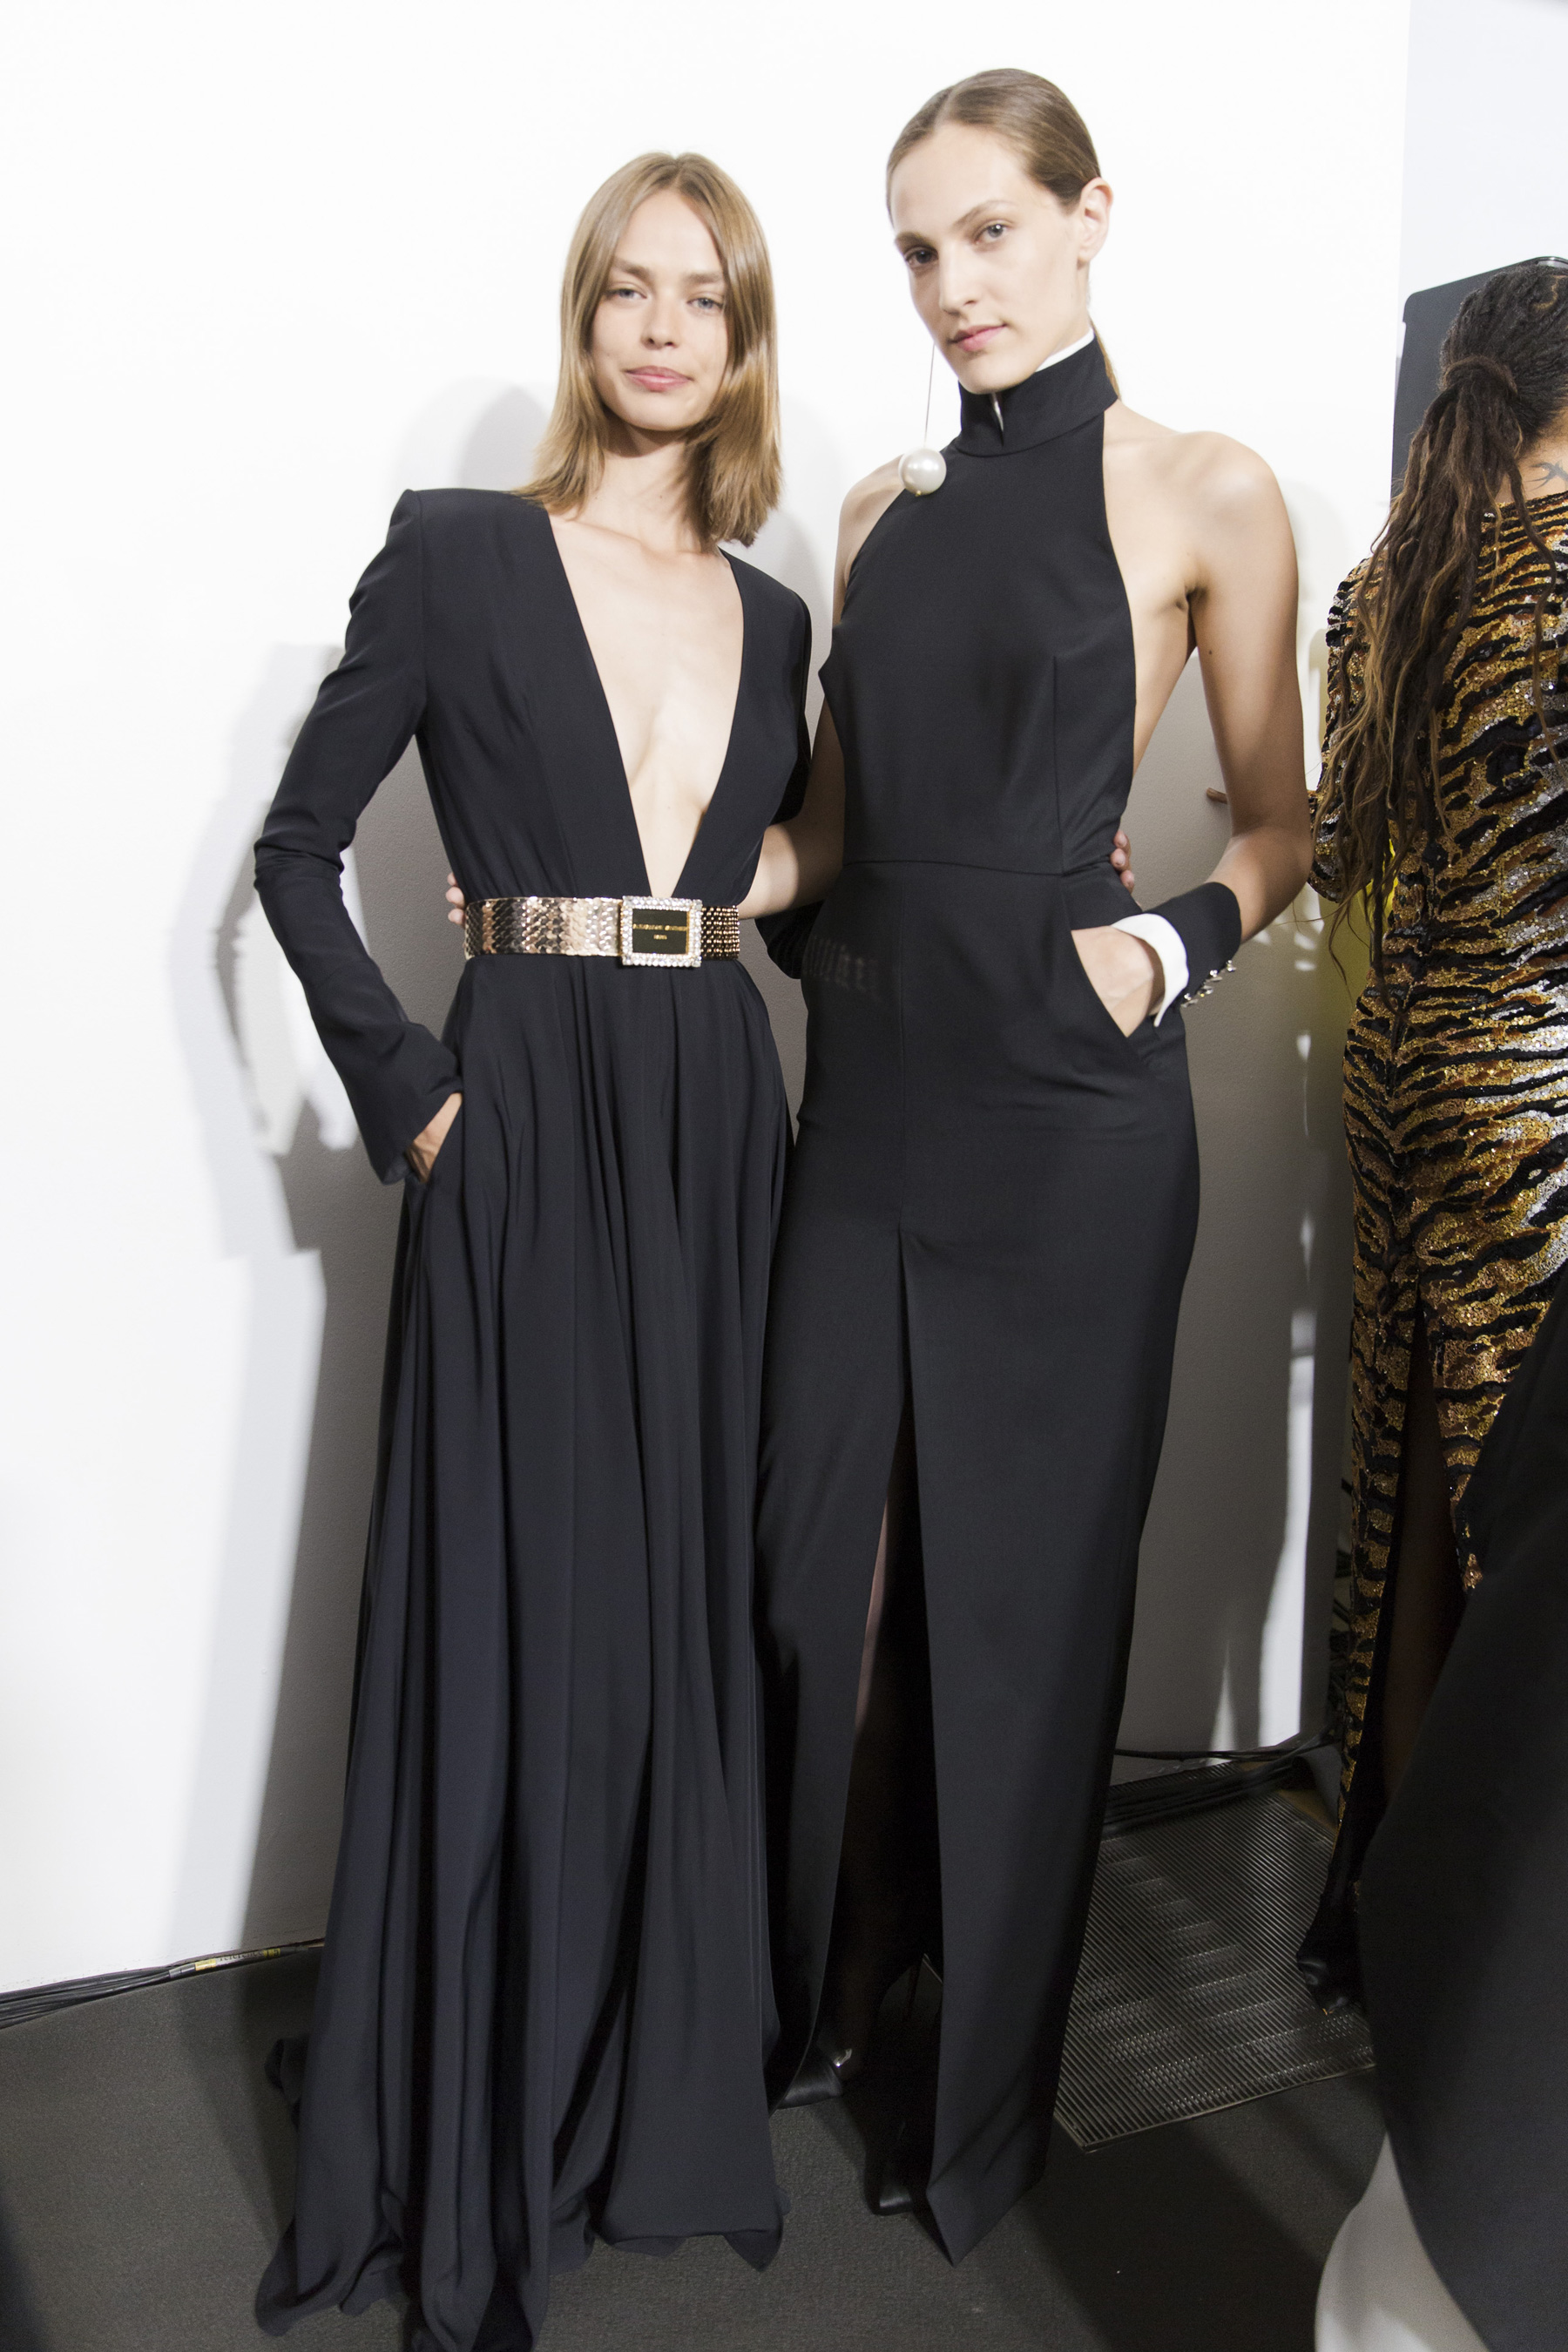 Alexandre Vauthier Fall 2018 Couture Fashion Show Backstage